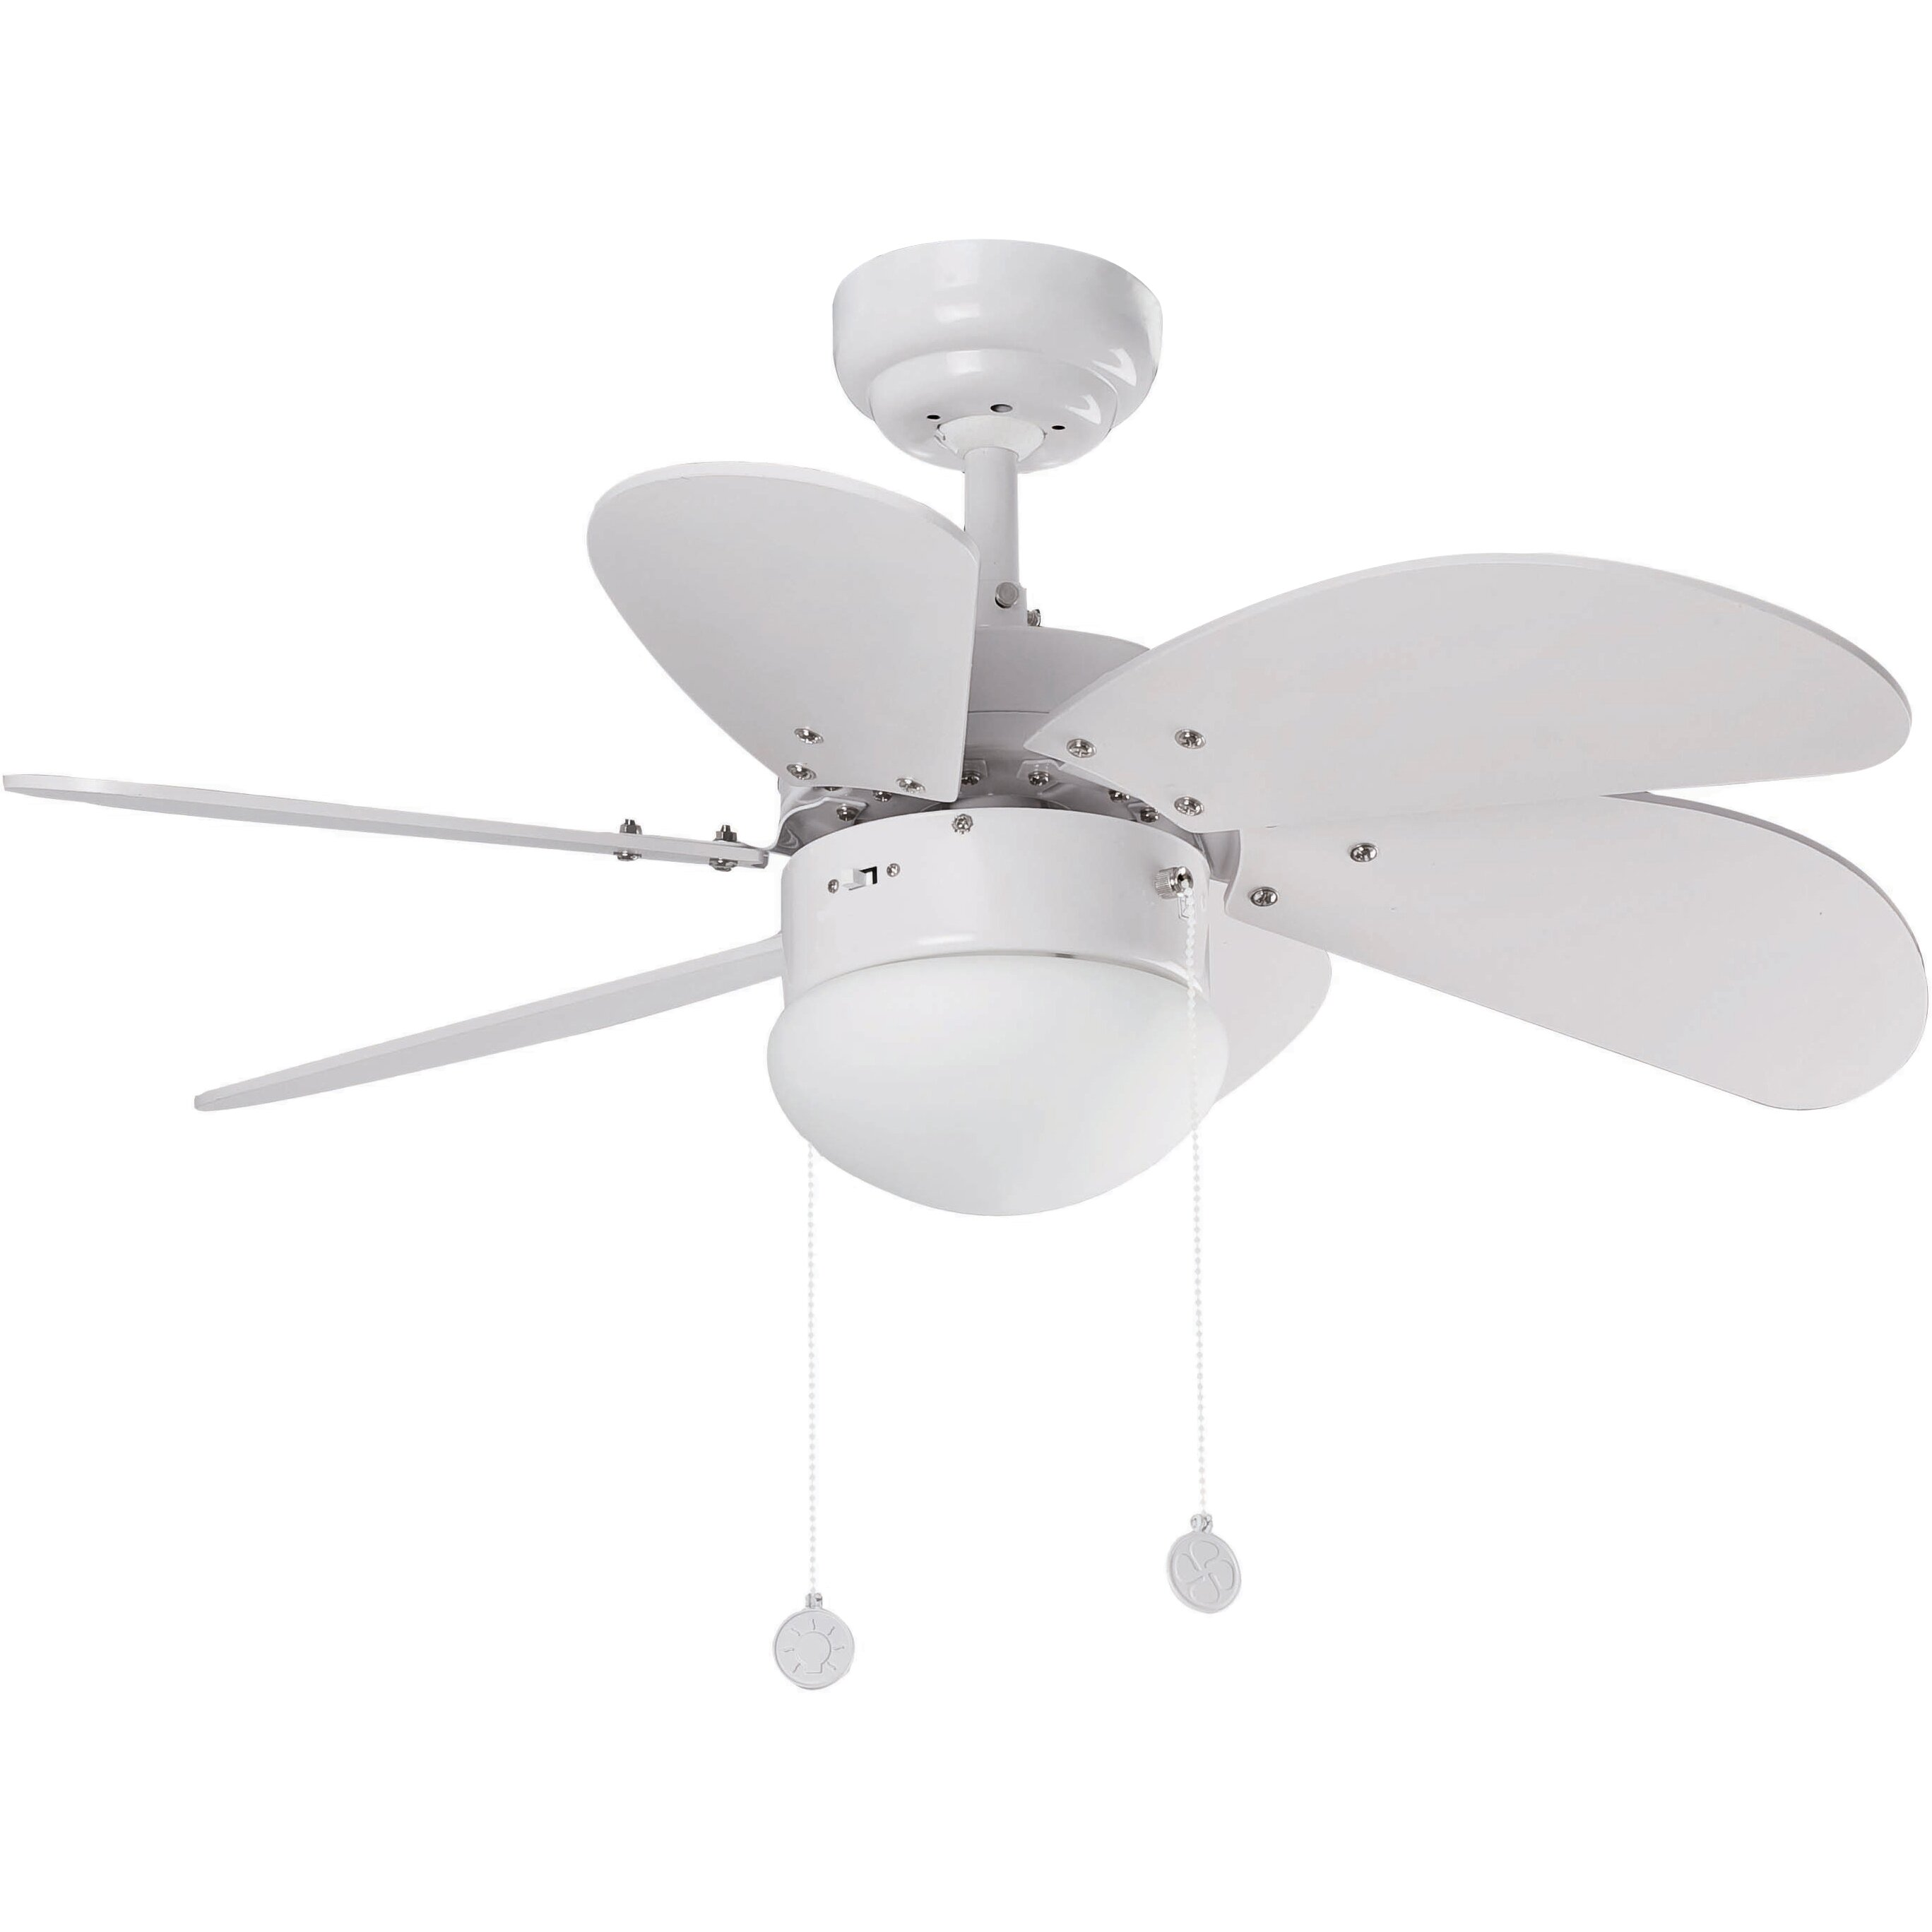 Faro Deckenventilator Palao 81 Cm Amp Reviews Von